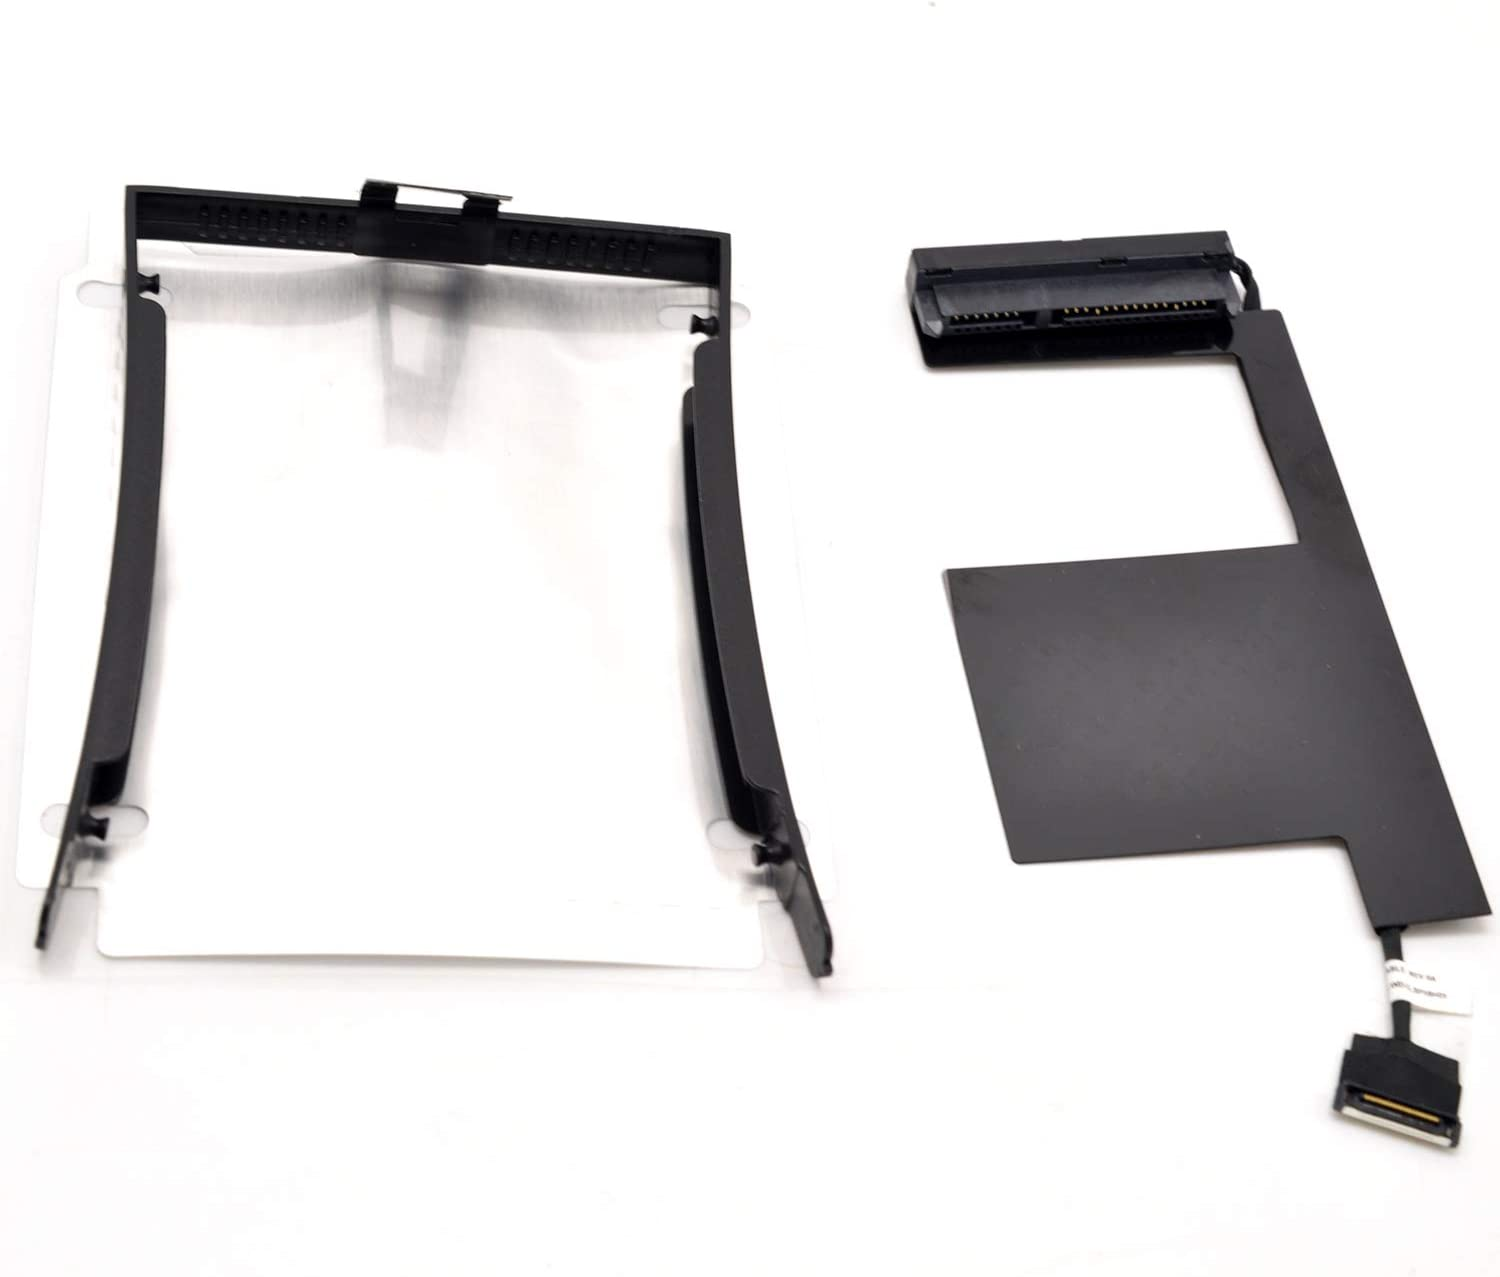 Deal4GO Left SSD Hard Disk Drive Cable Connector with 2.5 HDD Caddy Tray Bracket Sticker Set for Lenovo Thinkpad P50 P51 00UR835 DC02C007B00